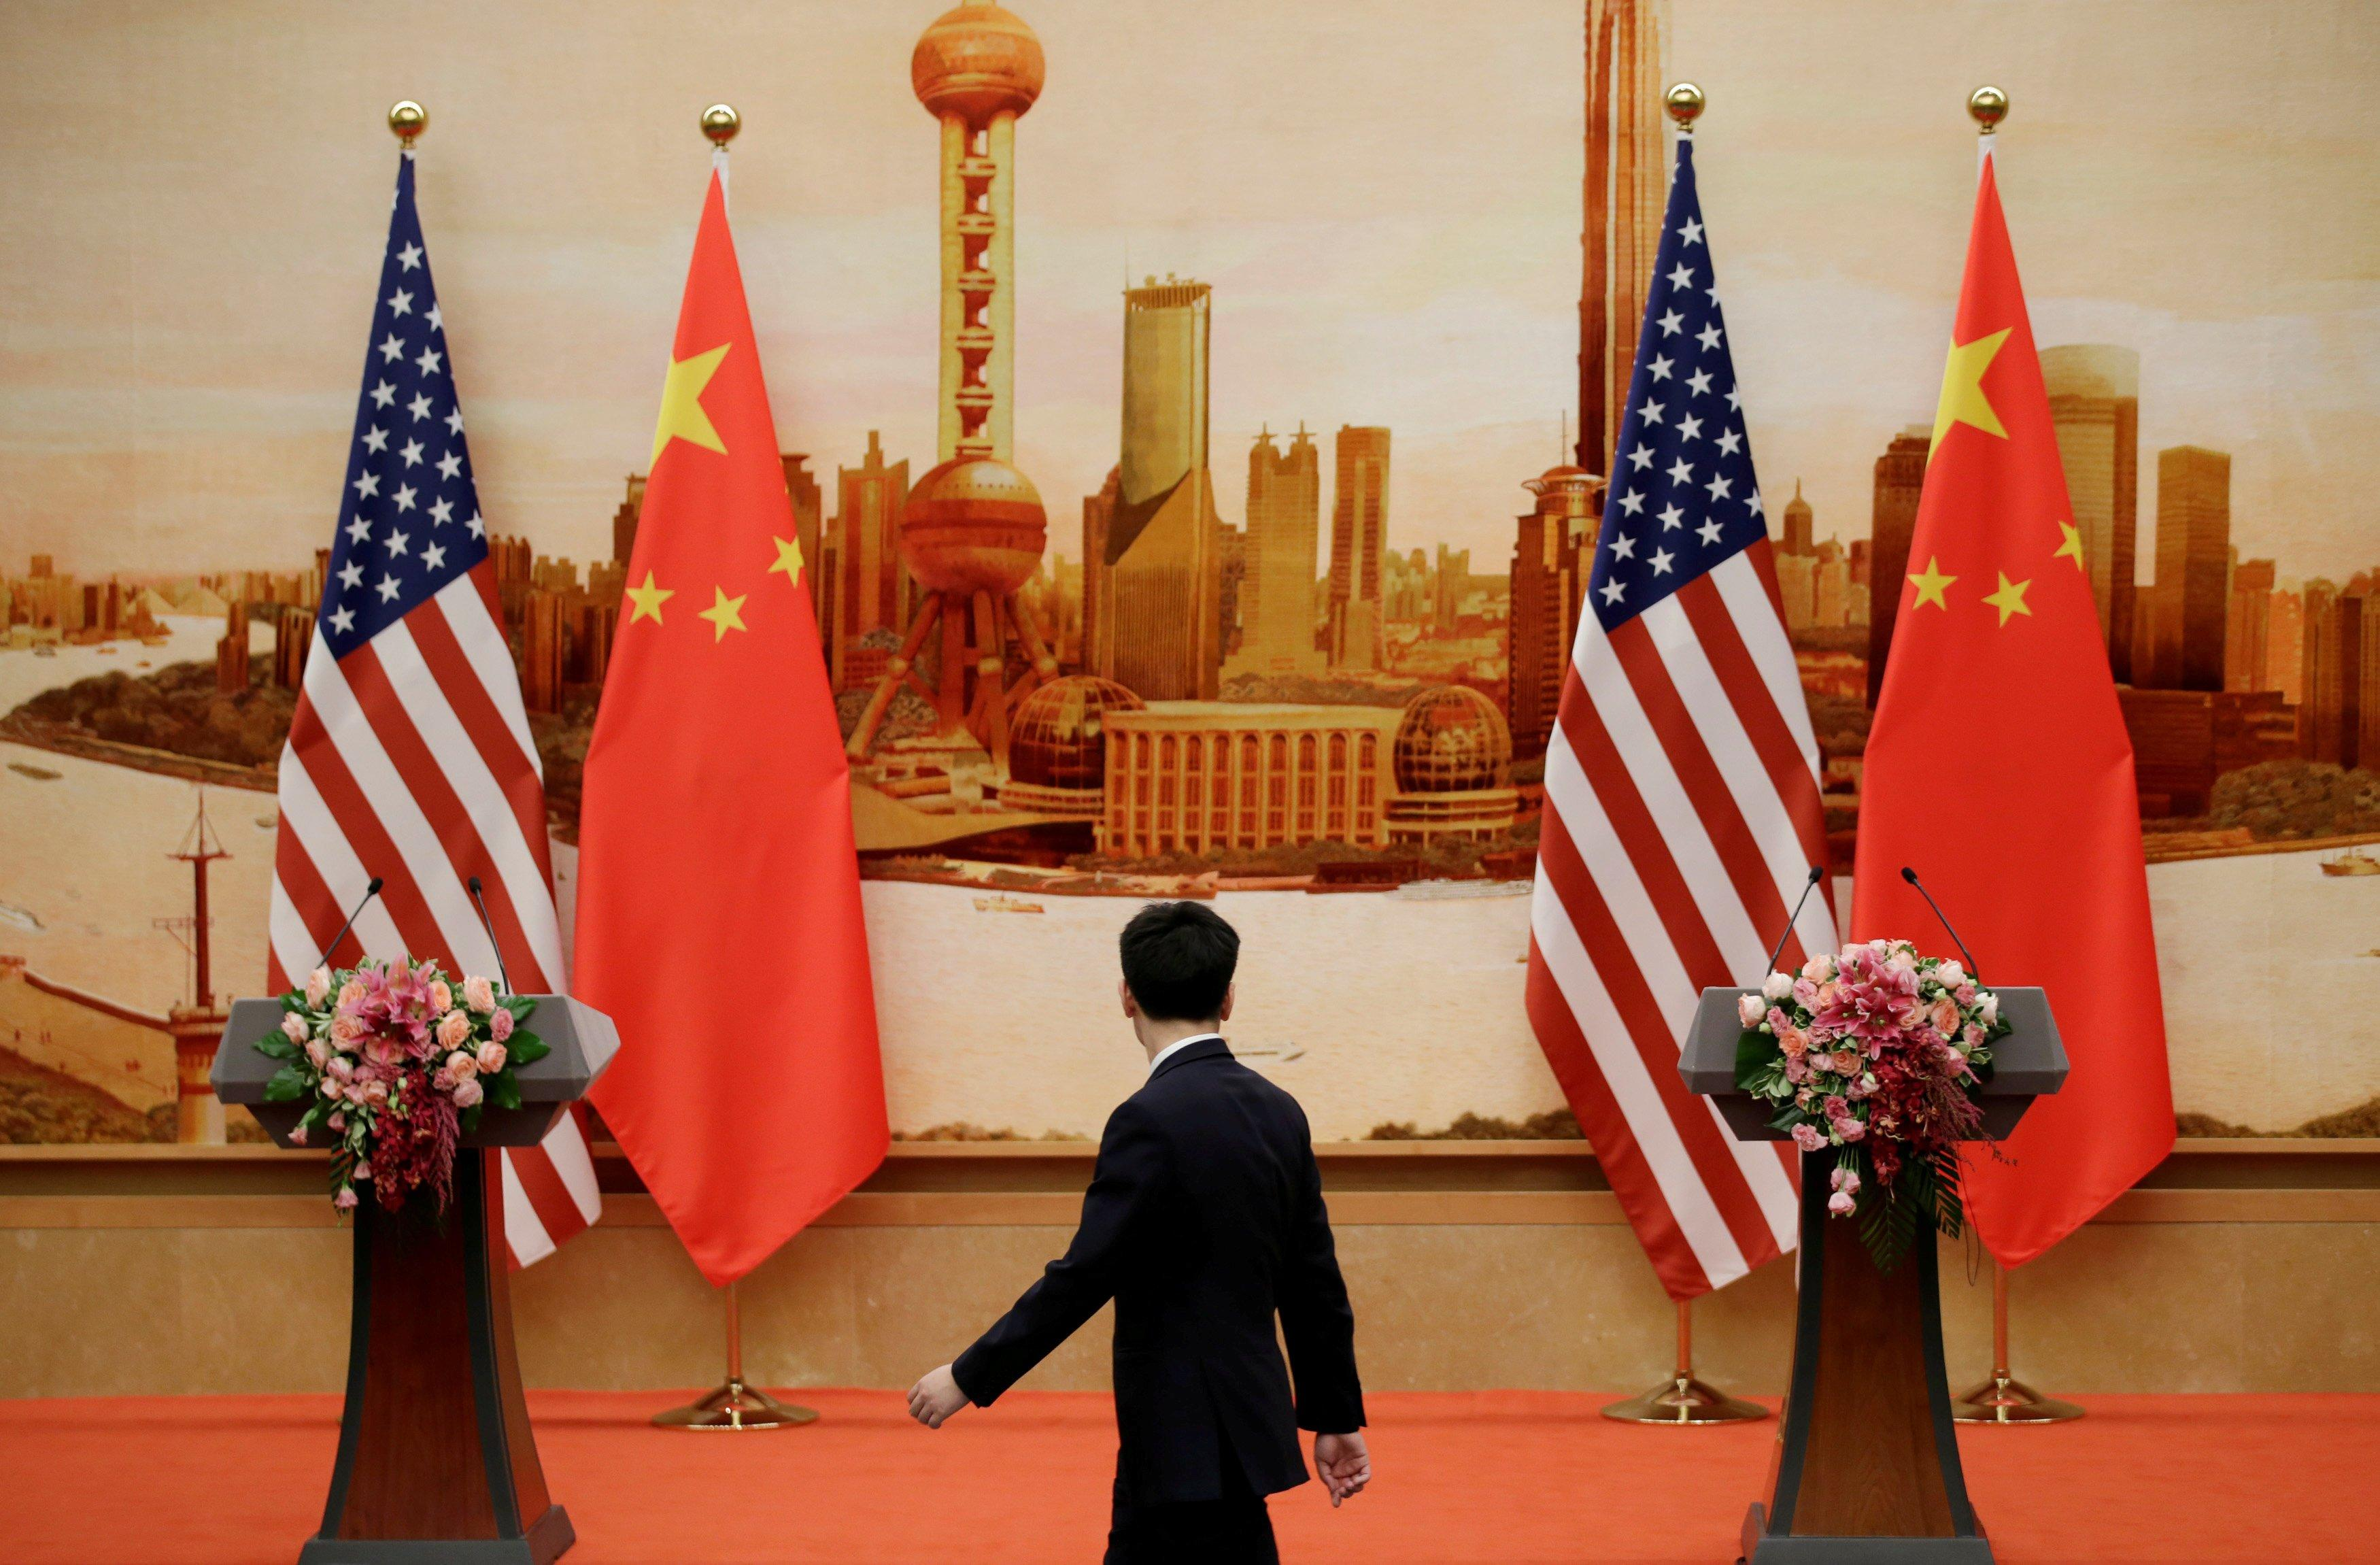 chinas threat to us economy The us side has repeatedly escalated the situation against the interests of both enterprises and consumers, a statement from the chinese commerce the us is expected to implement tariffs on a further $16 billion worth of goods in the near future, which china says it will match immediately.